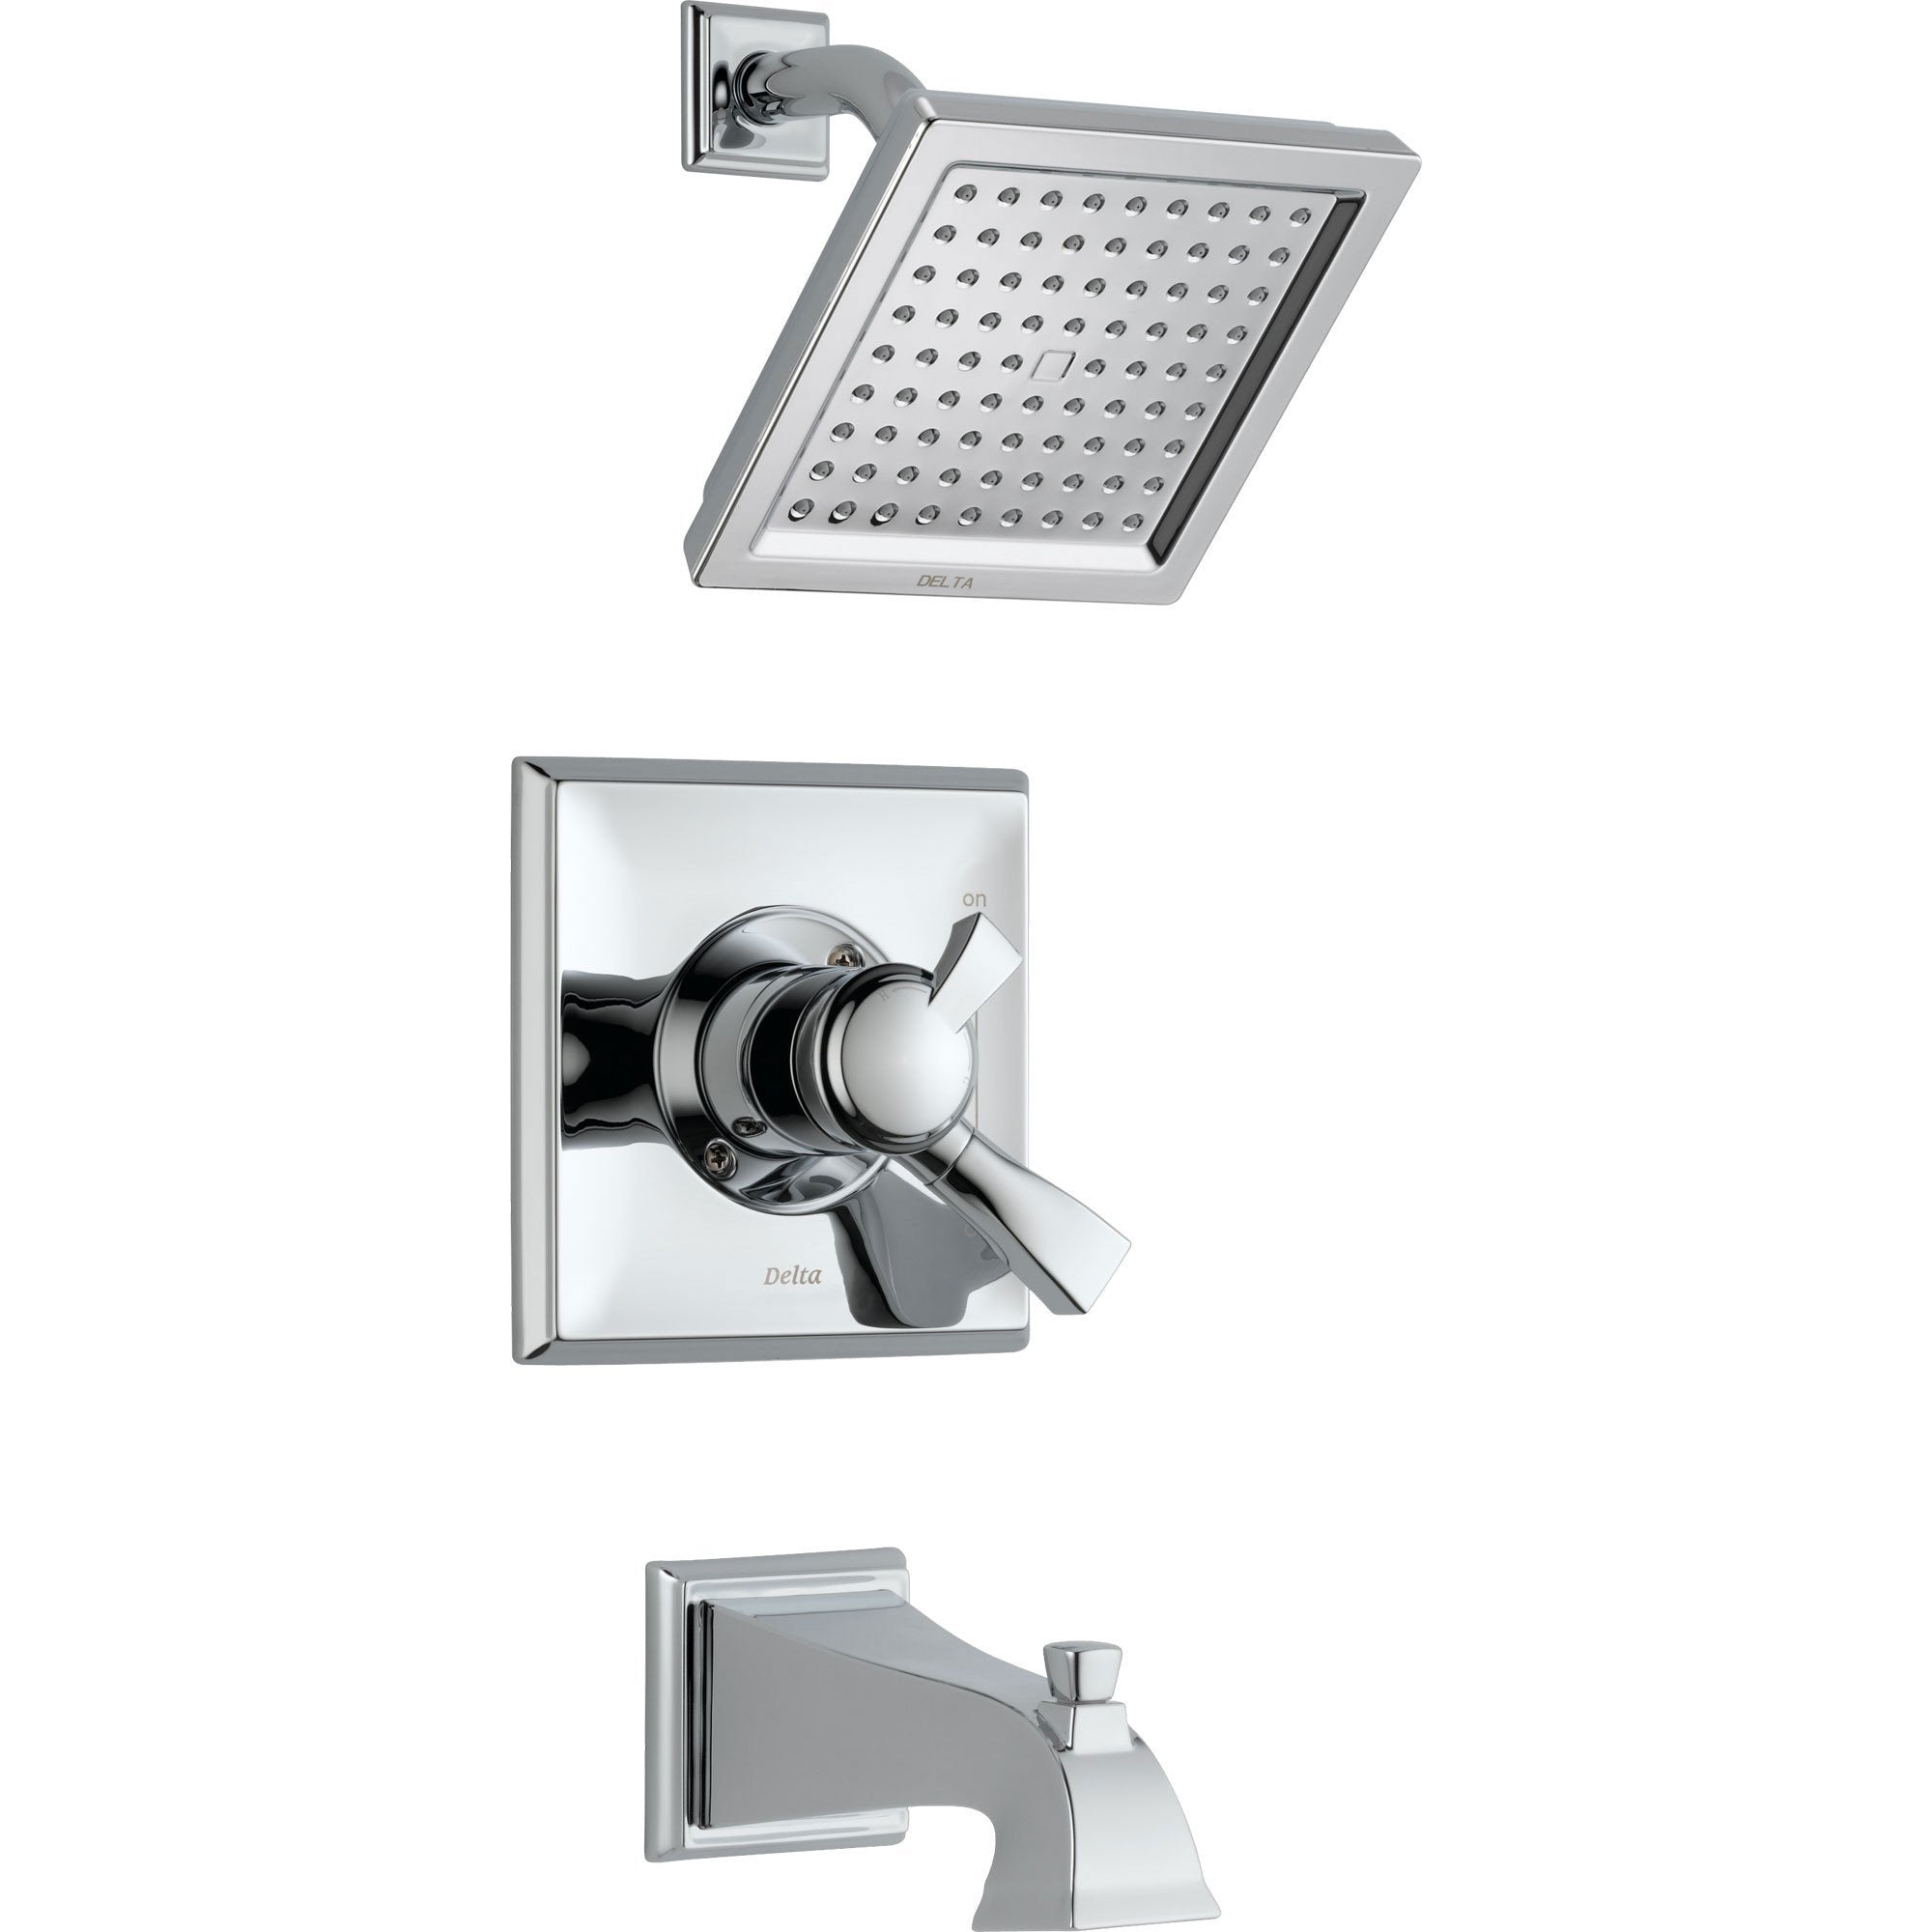 Delta Dryden Temp/Volume Dual Control Chrome Tub and Shower Faucet w/Valve D370V